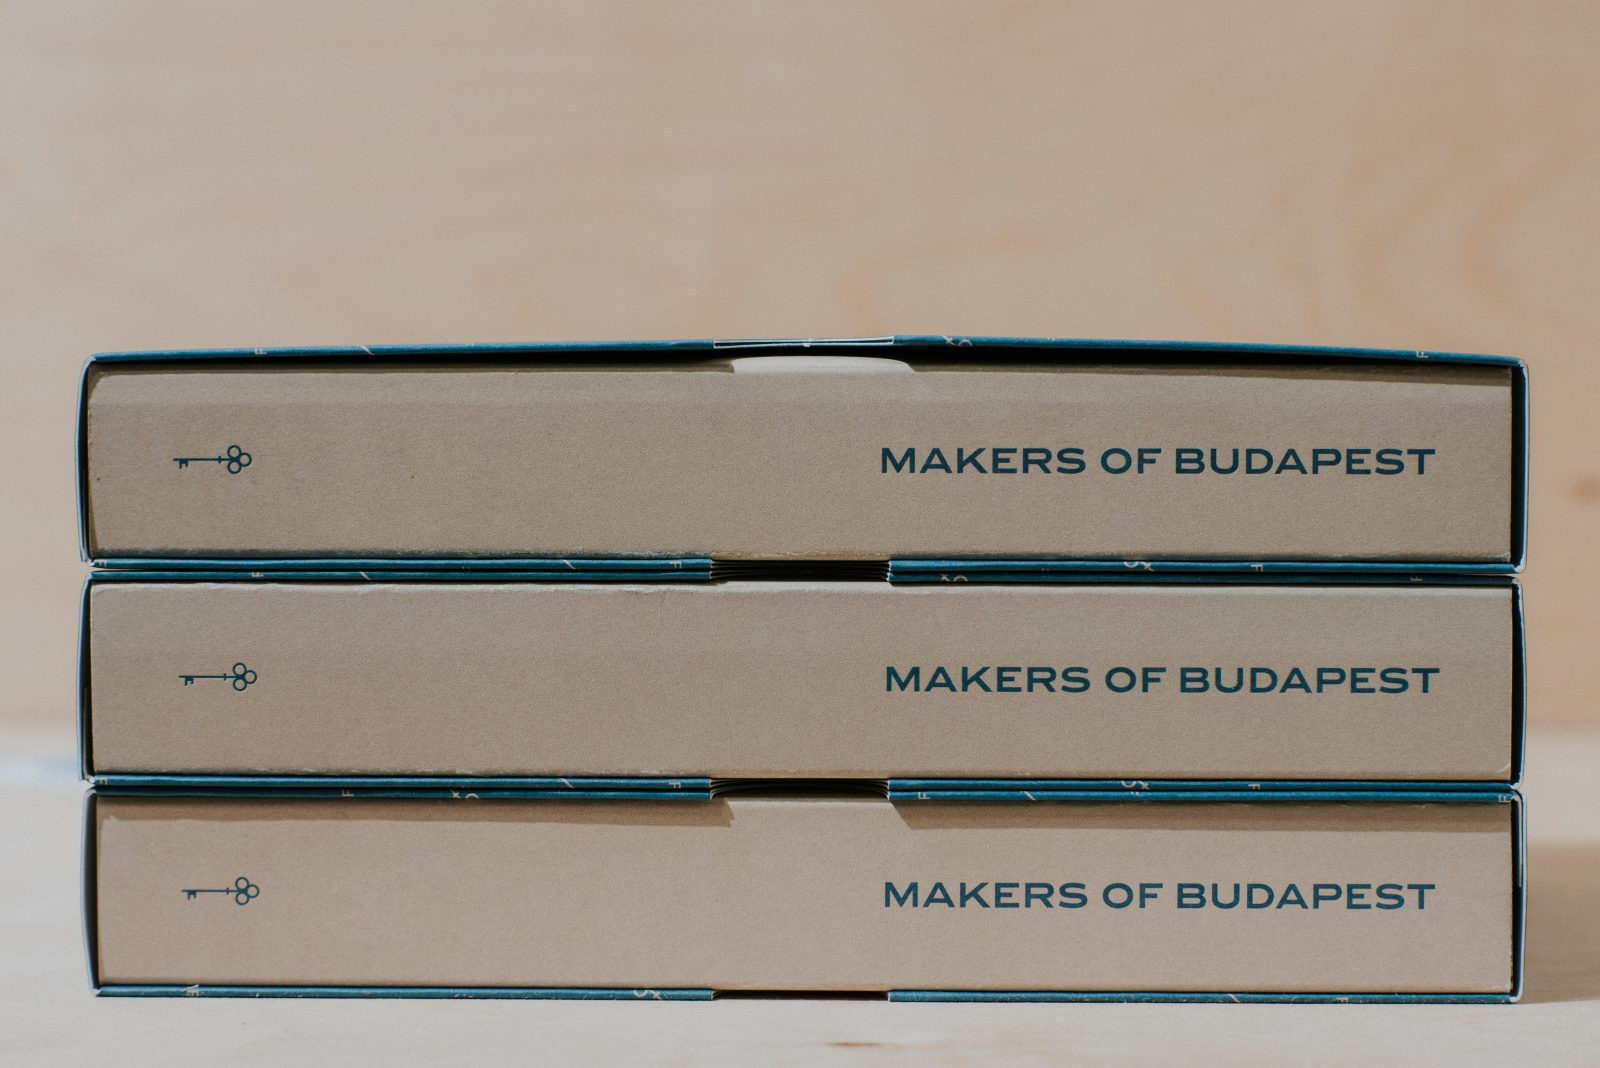 makers-of-budapest-book_14